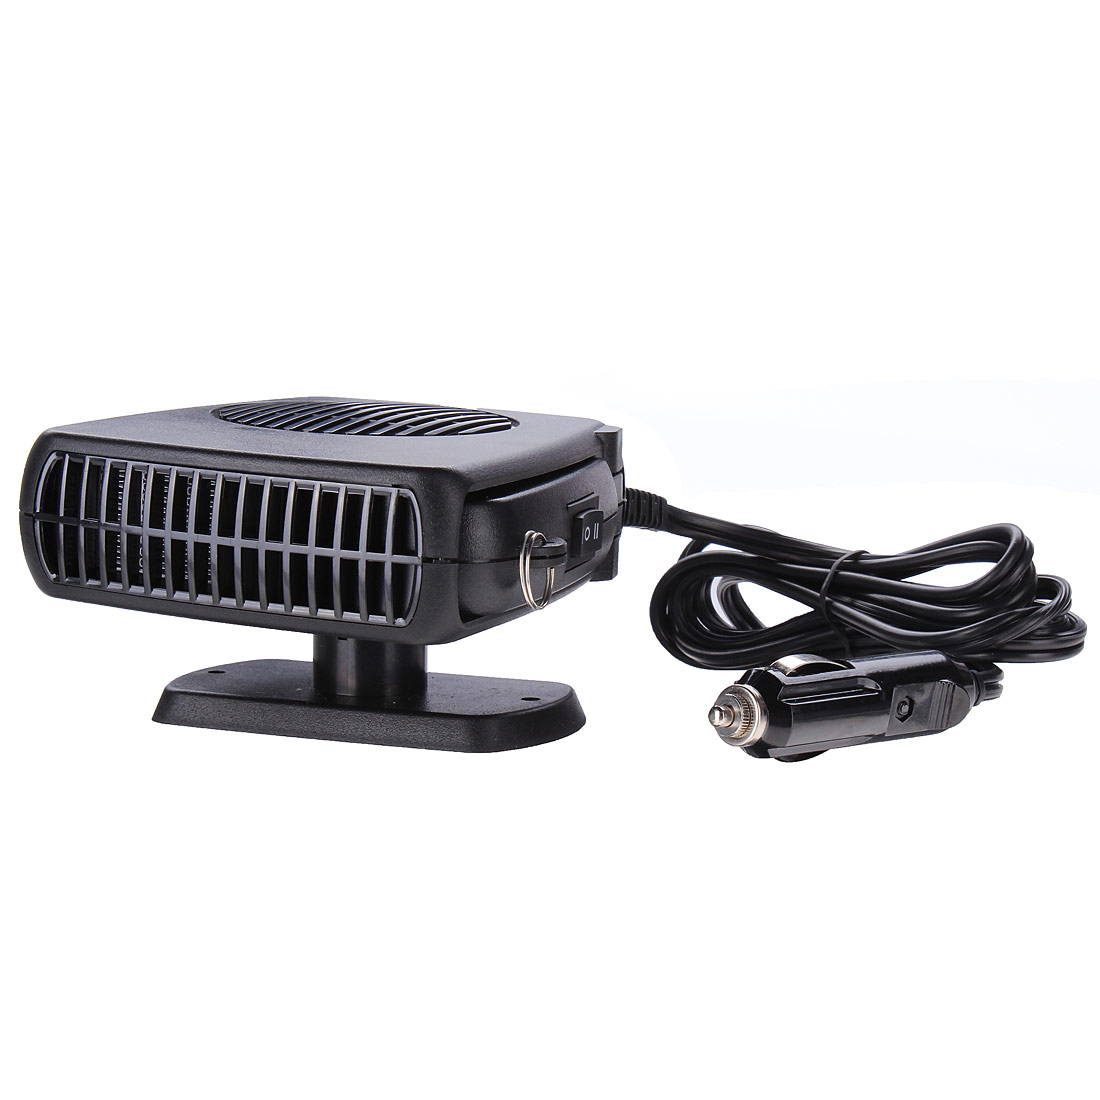 ventilateur chauffage d givreur allume cigare 12v 150w auto moto voiture camion ebay. Black Bedroom Furniture Sets. Home Design Ideas